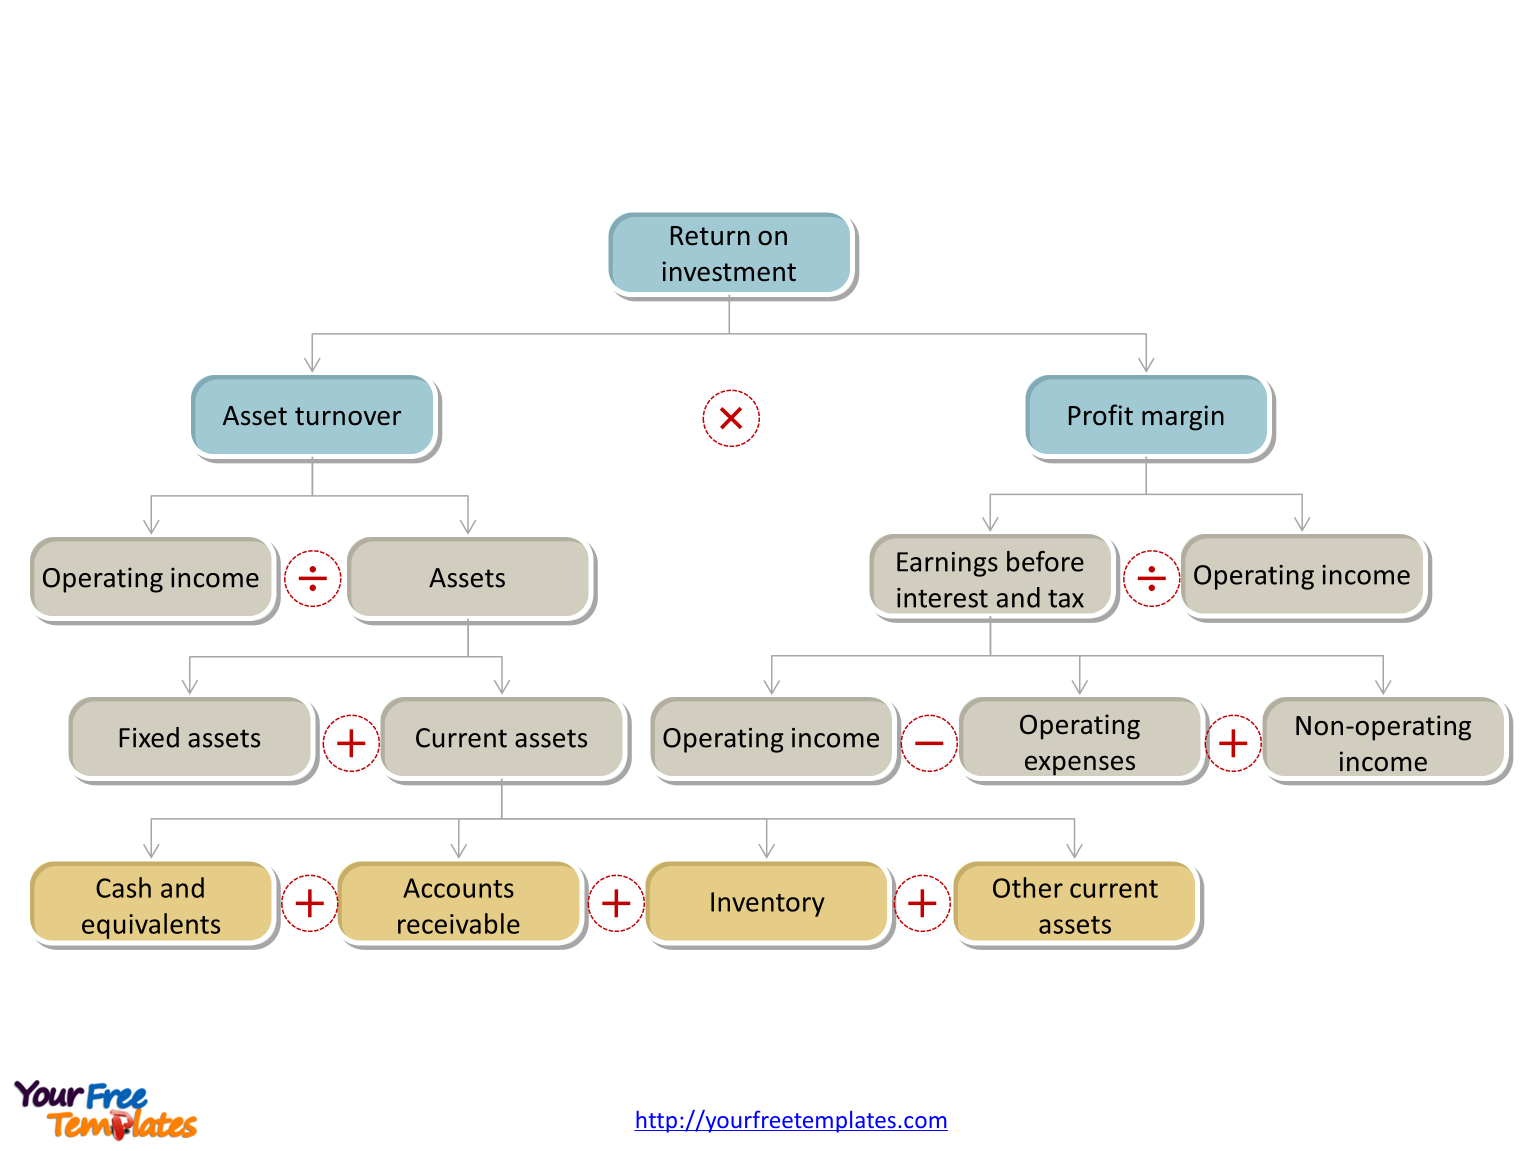 the return on investment (ROI) model for Dupont analysis in PowerPoint template